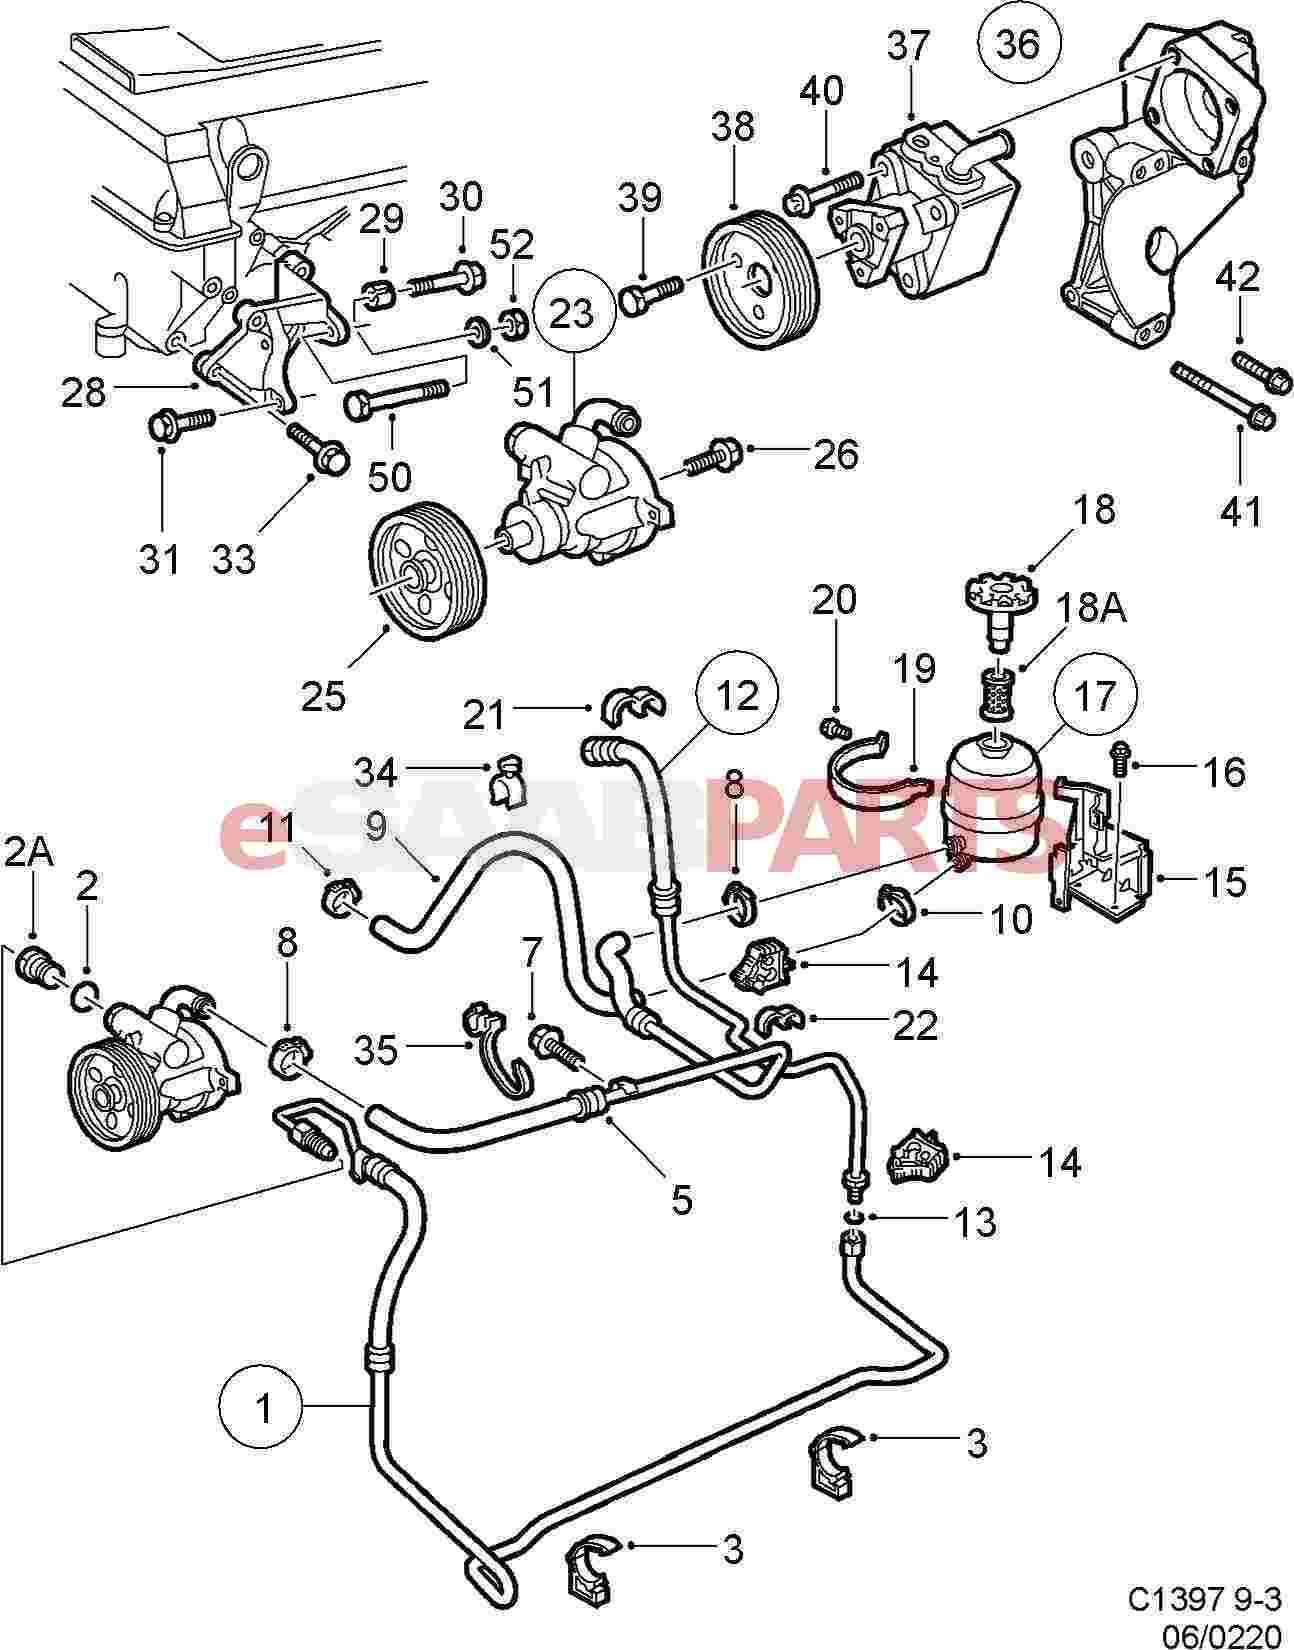 2006 Saab 9 7x Wiring Diagram  U2013 Wires  U0026 Decors